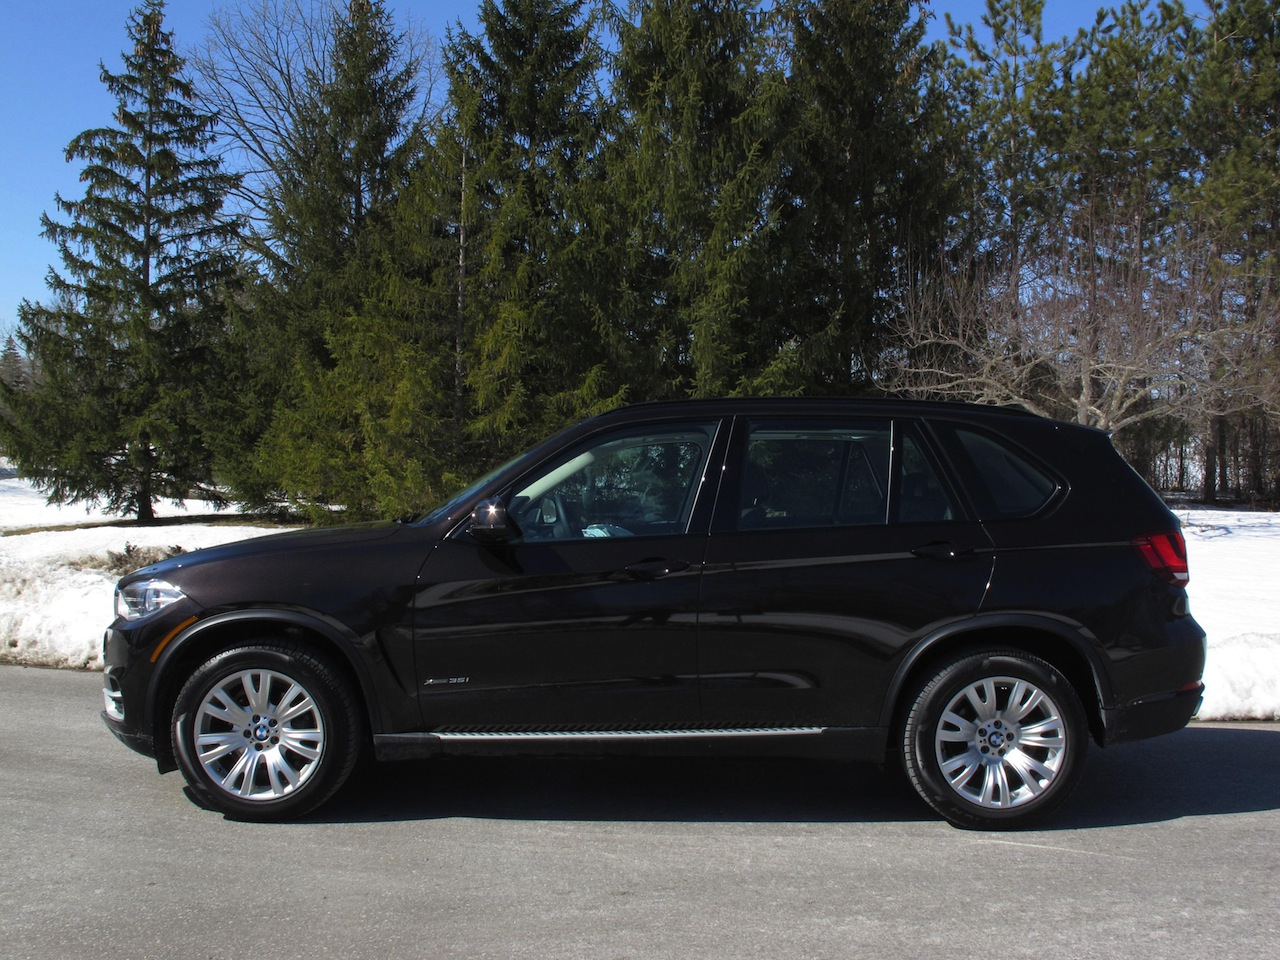 Bmw X5 Prices South Africa 2014.html | Autos Post